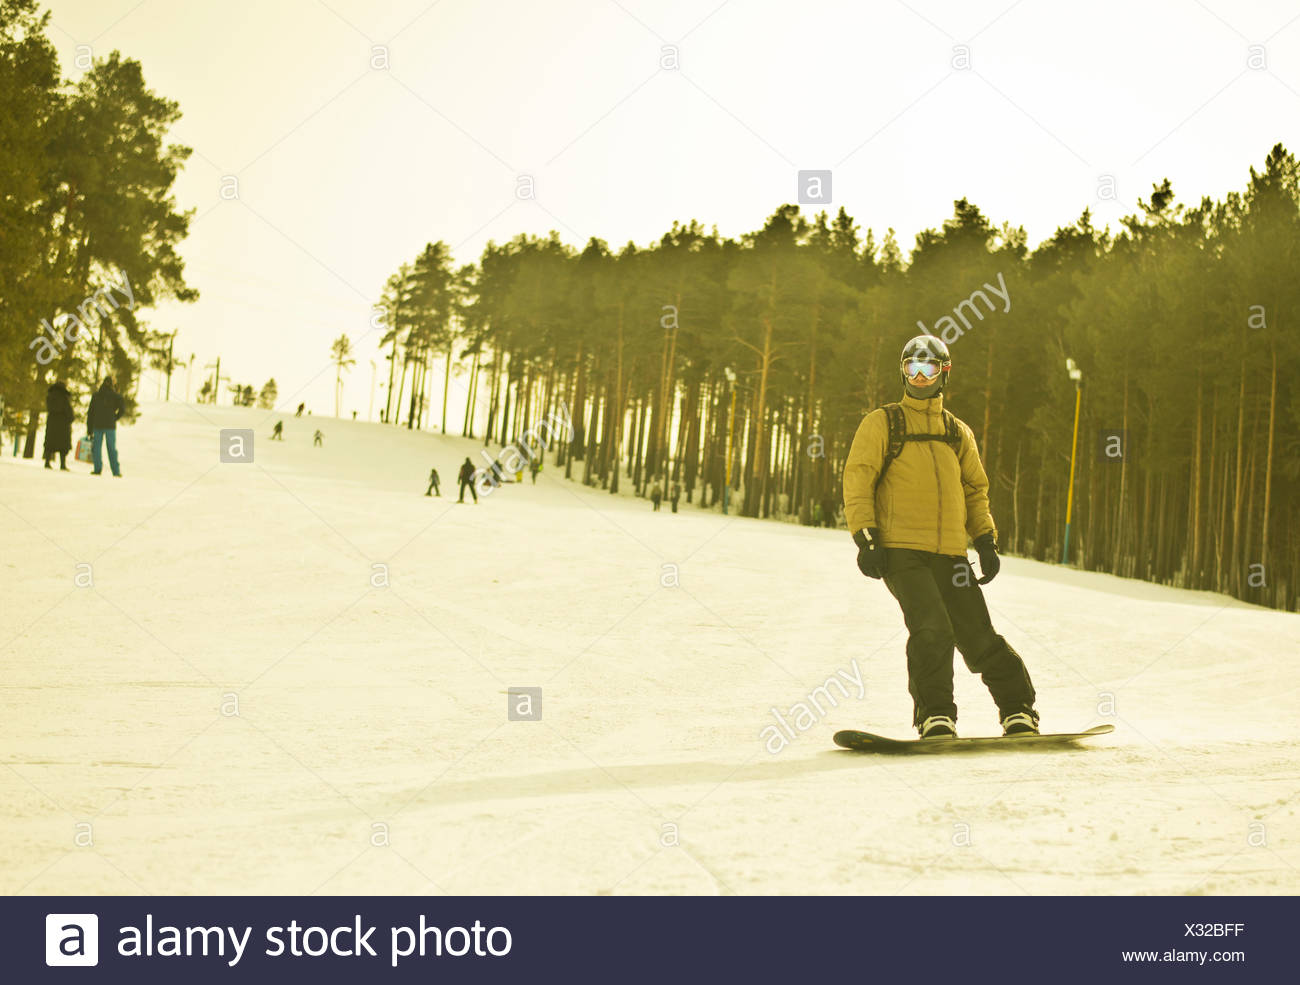 a report on everything you need to know about snowboarding equipment Things you should know about cloth diaper  tips for purchasing used fitness equipment  october 19, 2018  6 places you must visit in paris  december 5, 2017   what you need before snowboarding september 25, 2018  marketing things to keep in mind about content optimization.